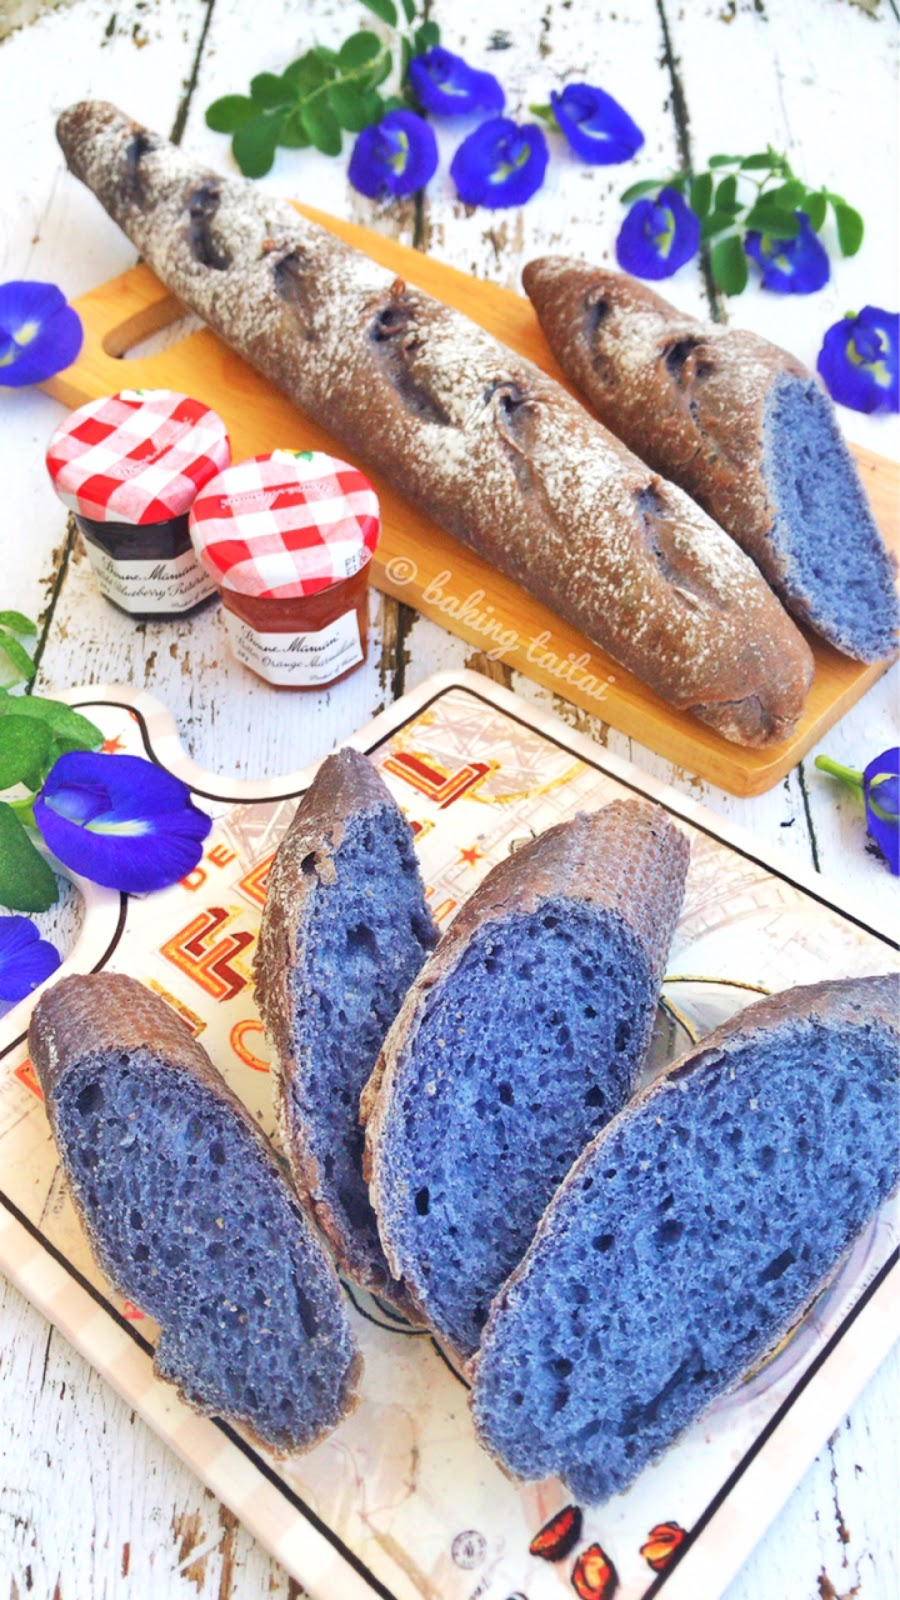 Baking Taitai 烘焙太太: Easy Butterfly Pea Baguettes 简易紫